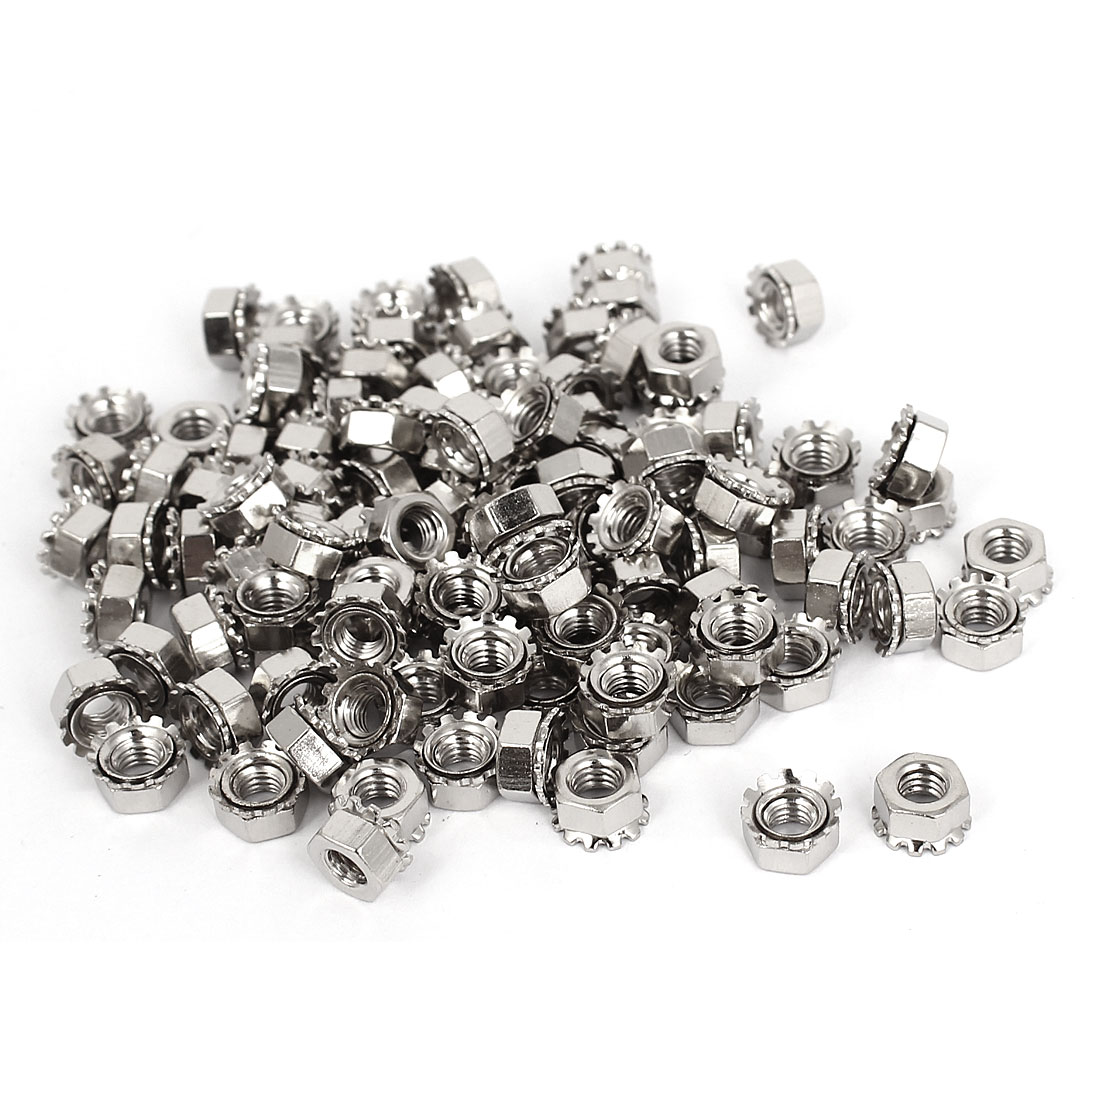 4mm Thread Dia Nickel Plated External Tooth K Lock Kep Nut Silver Tone 100Pcs